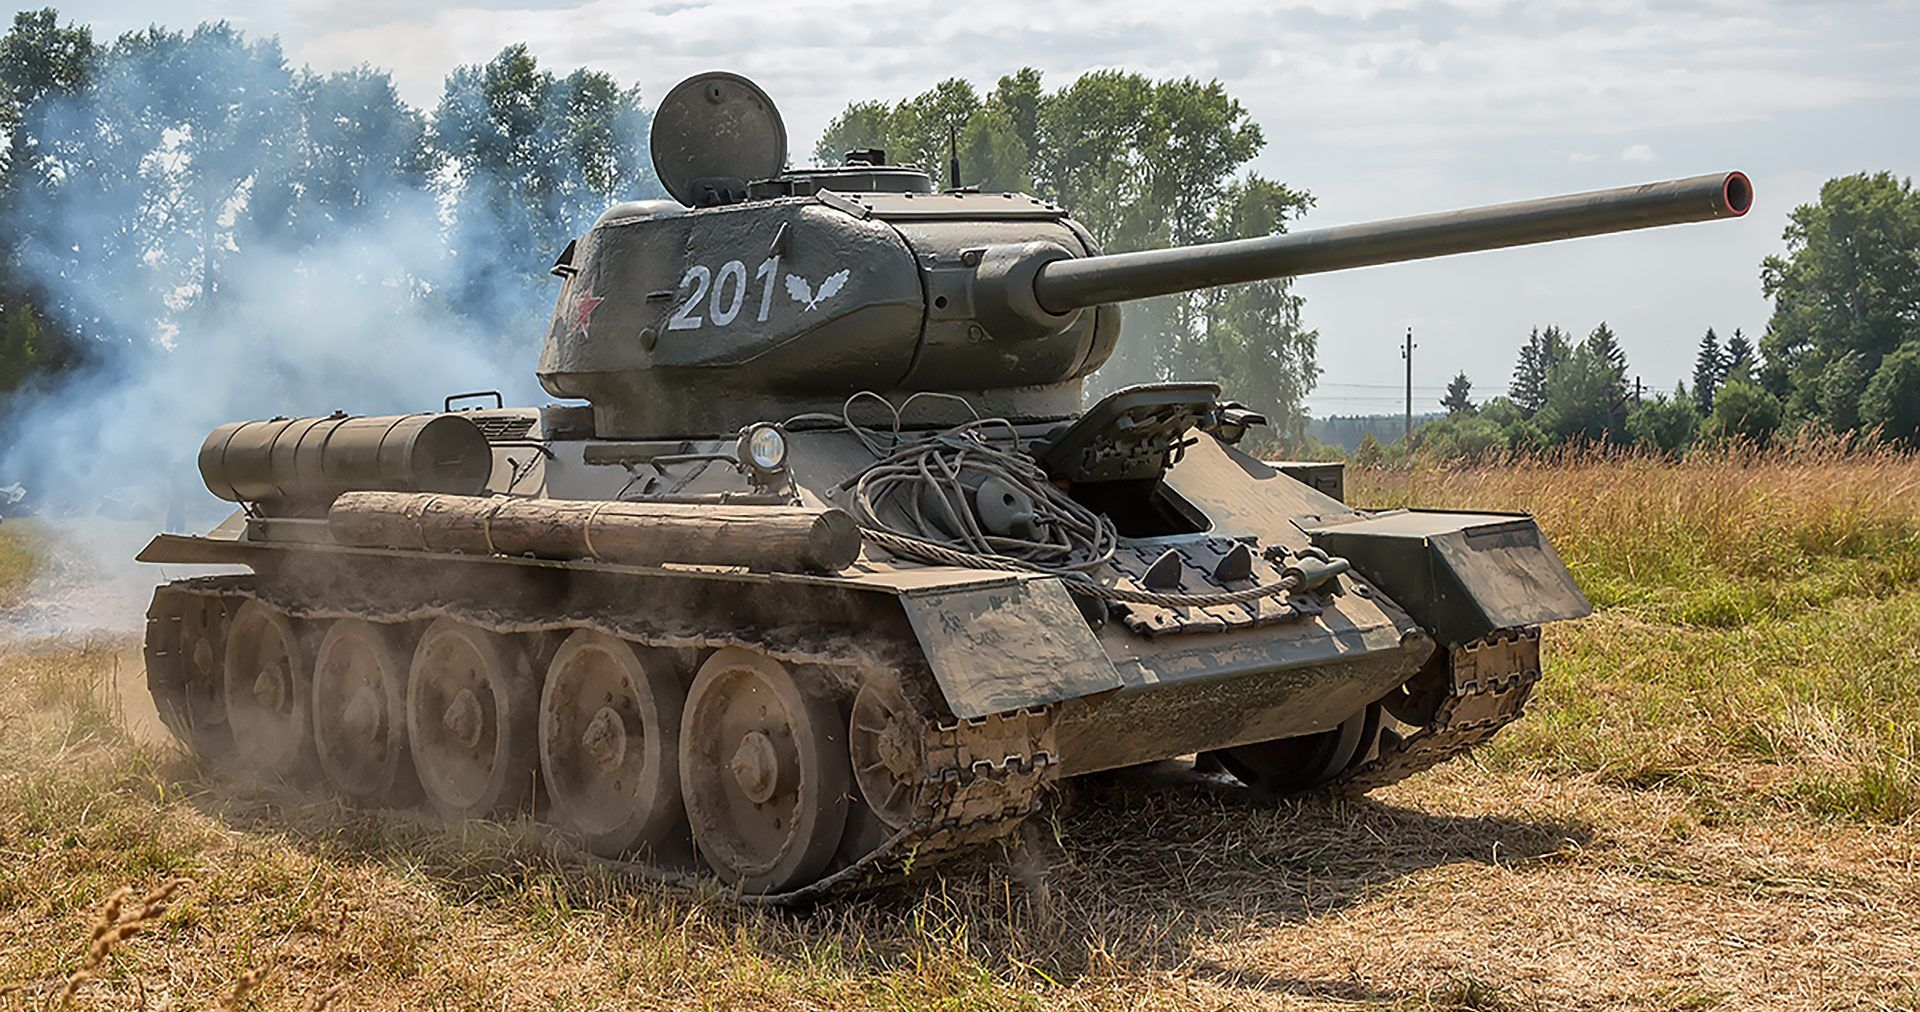 Ranking The 10 Best Tanks Of WWII | HotCars